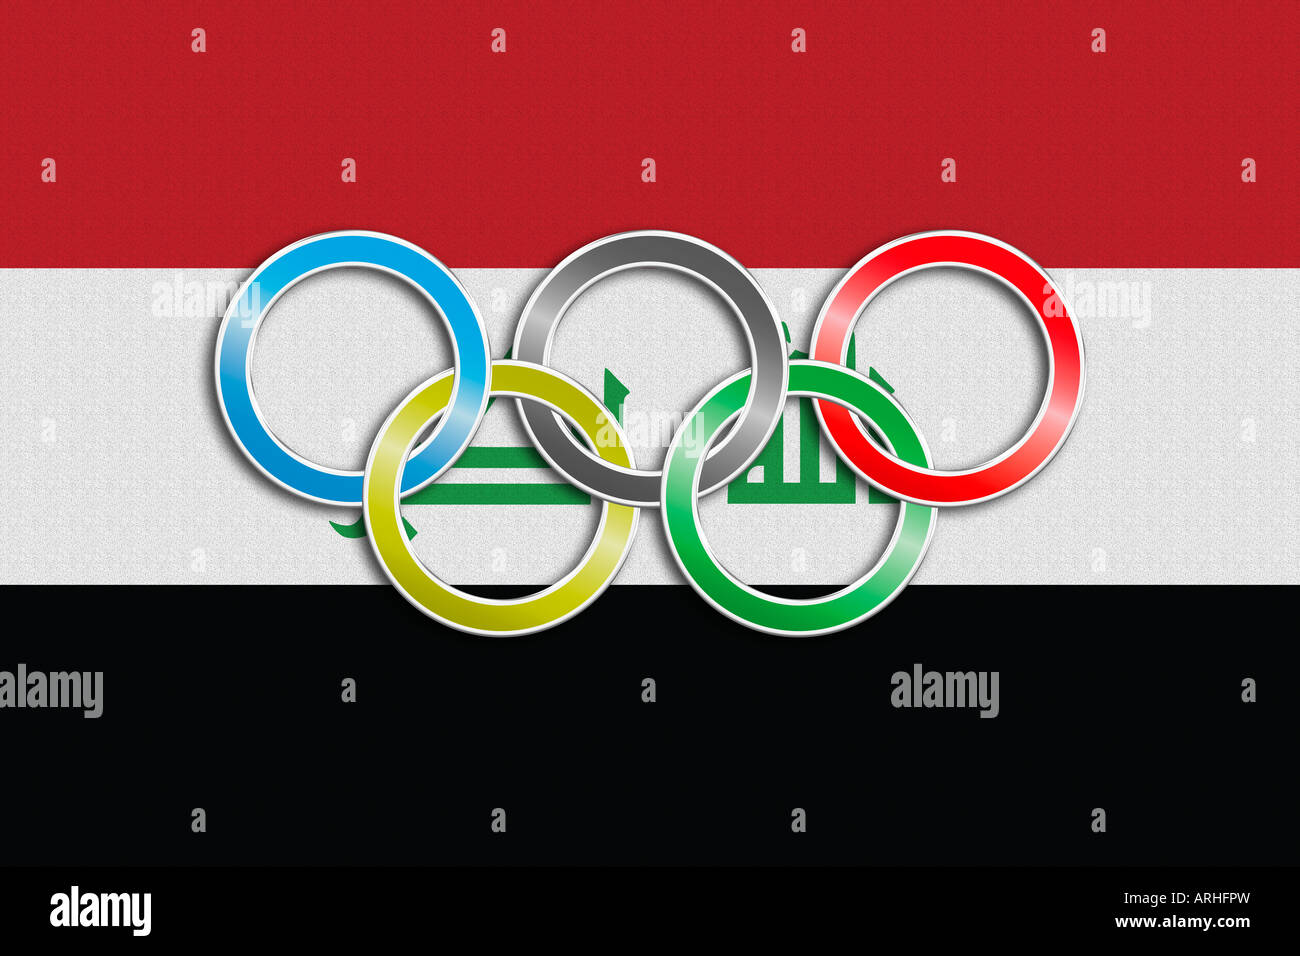 Flag of Iraq with olympic symbol - Stock Image